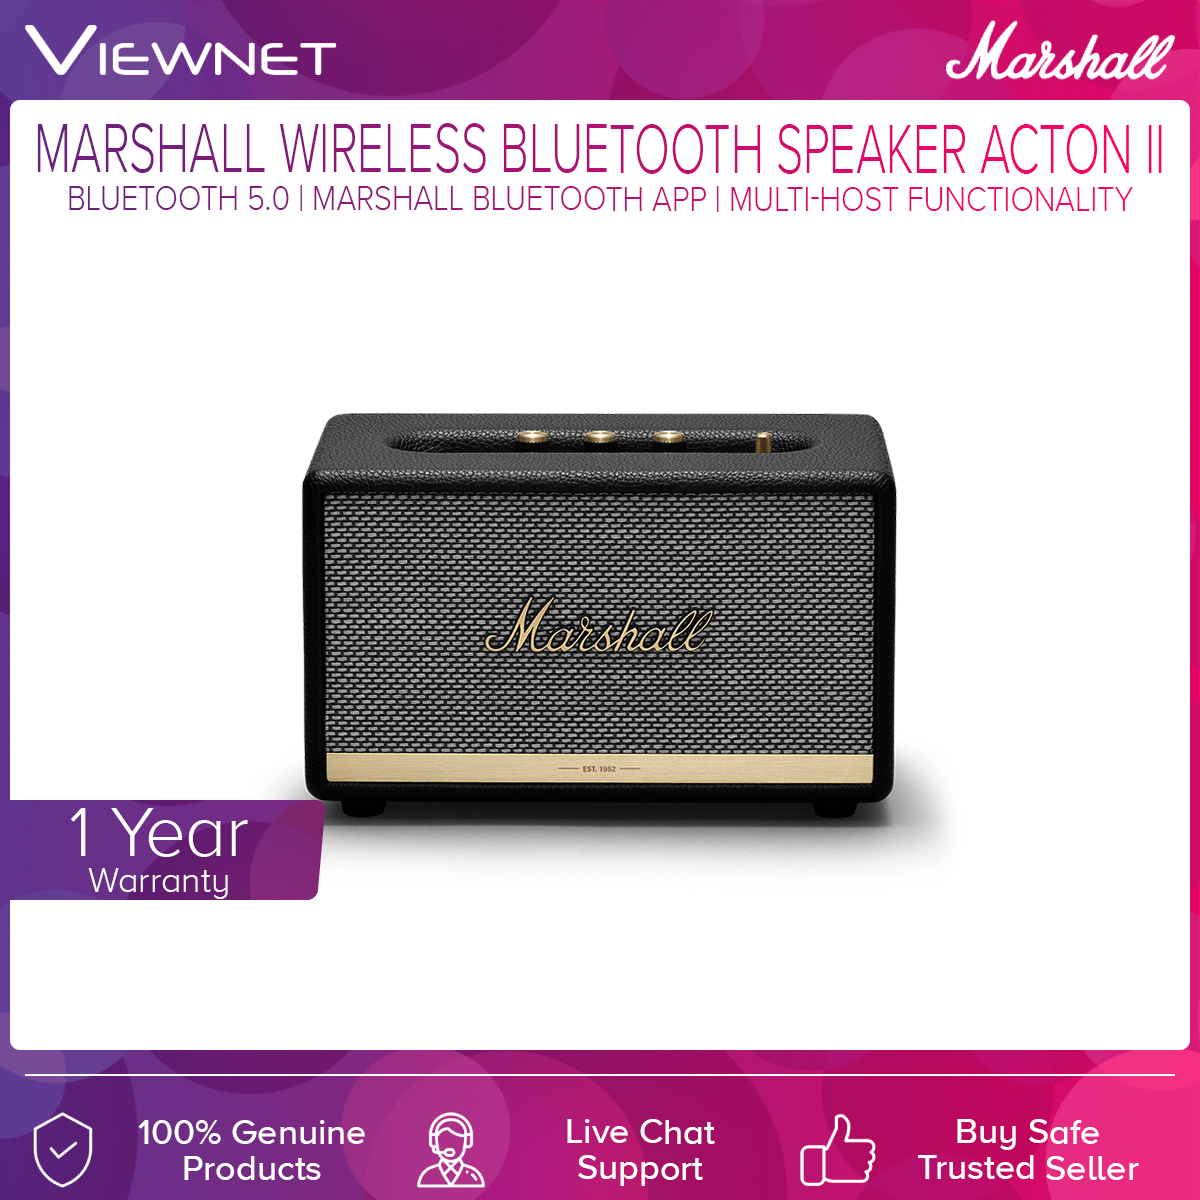 Marshall Acton II Bluetooth Speaker with Wireless Connect, Iconic Marshall design, Multi-host functionality, Marshall Bluetooth App